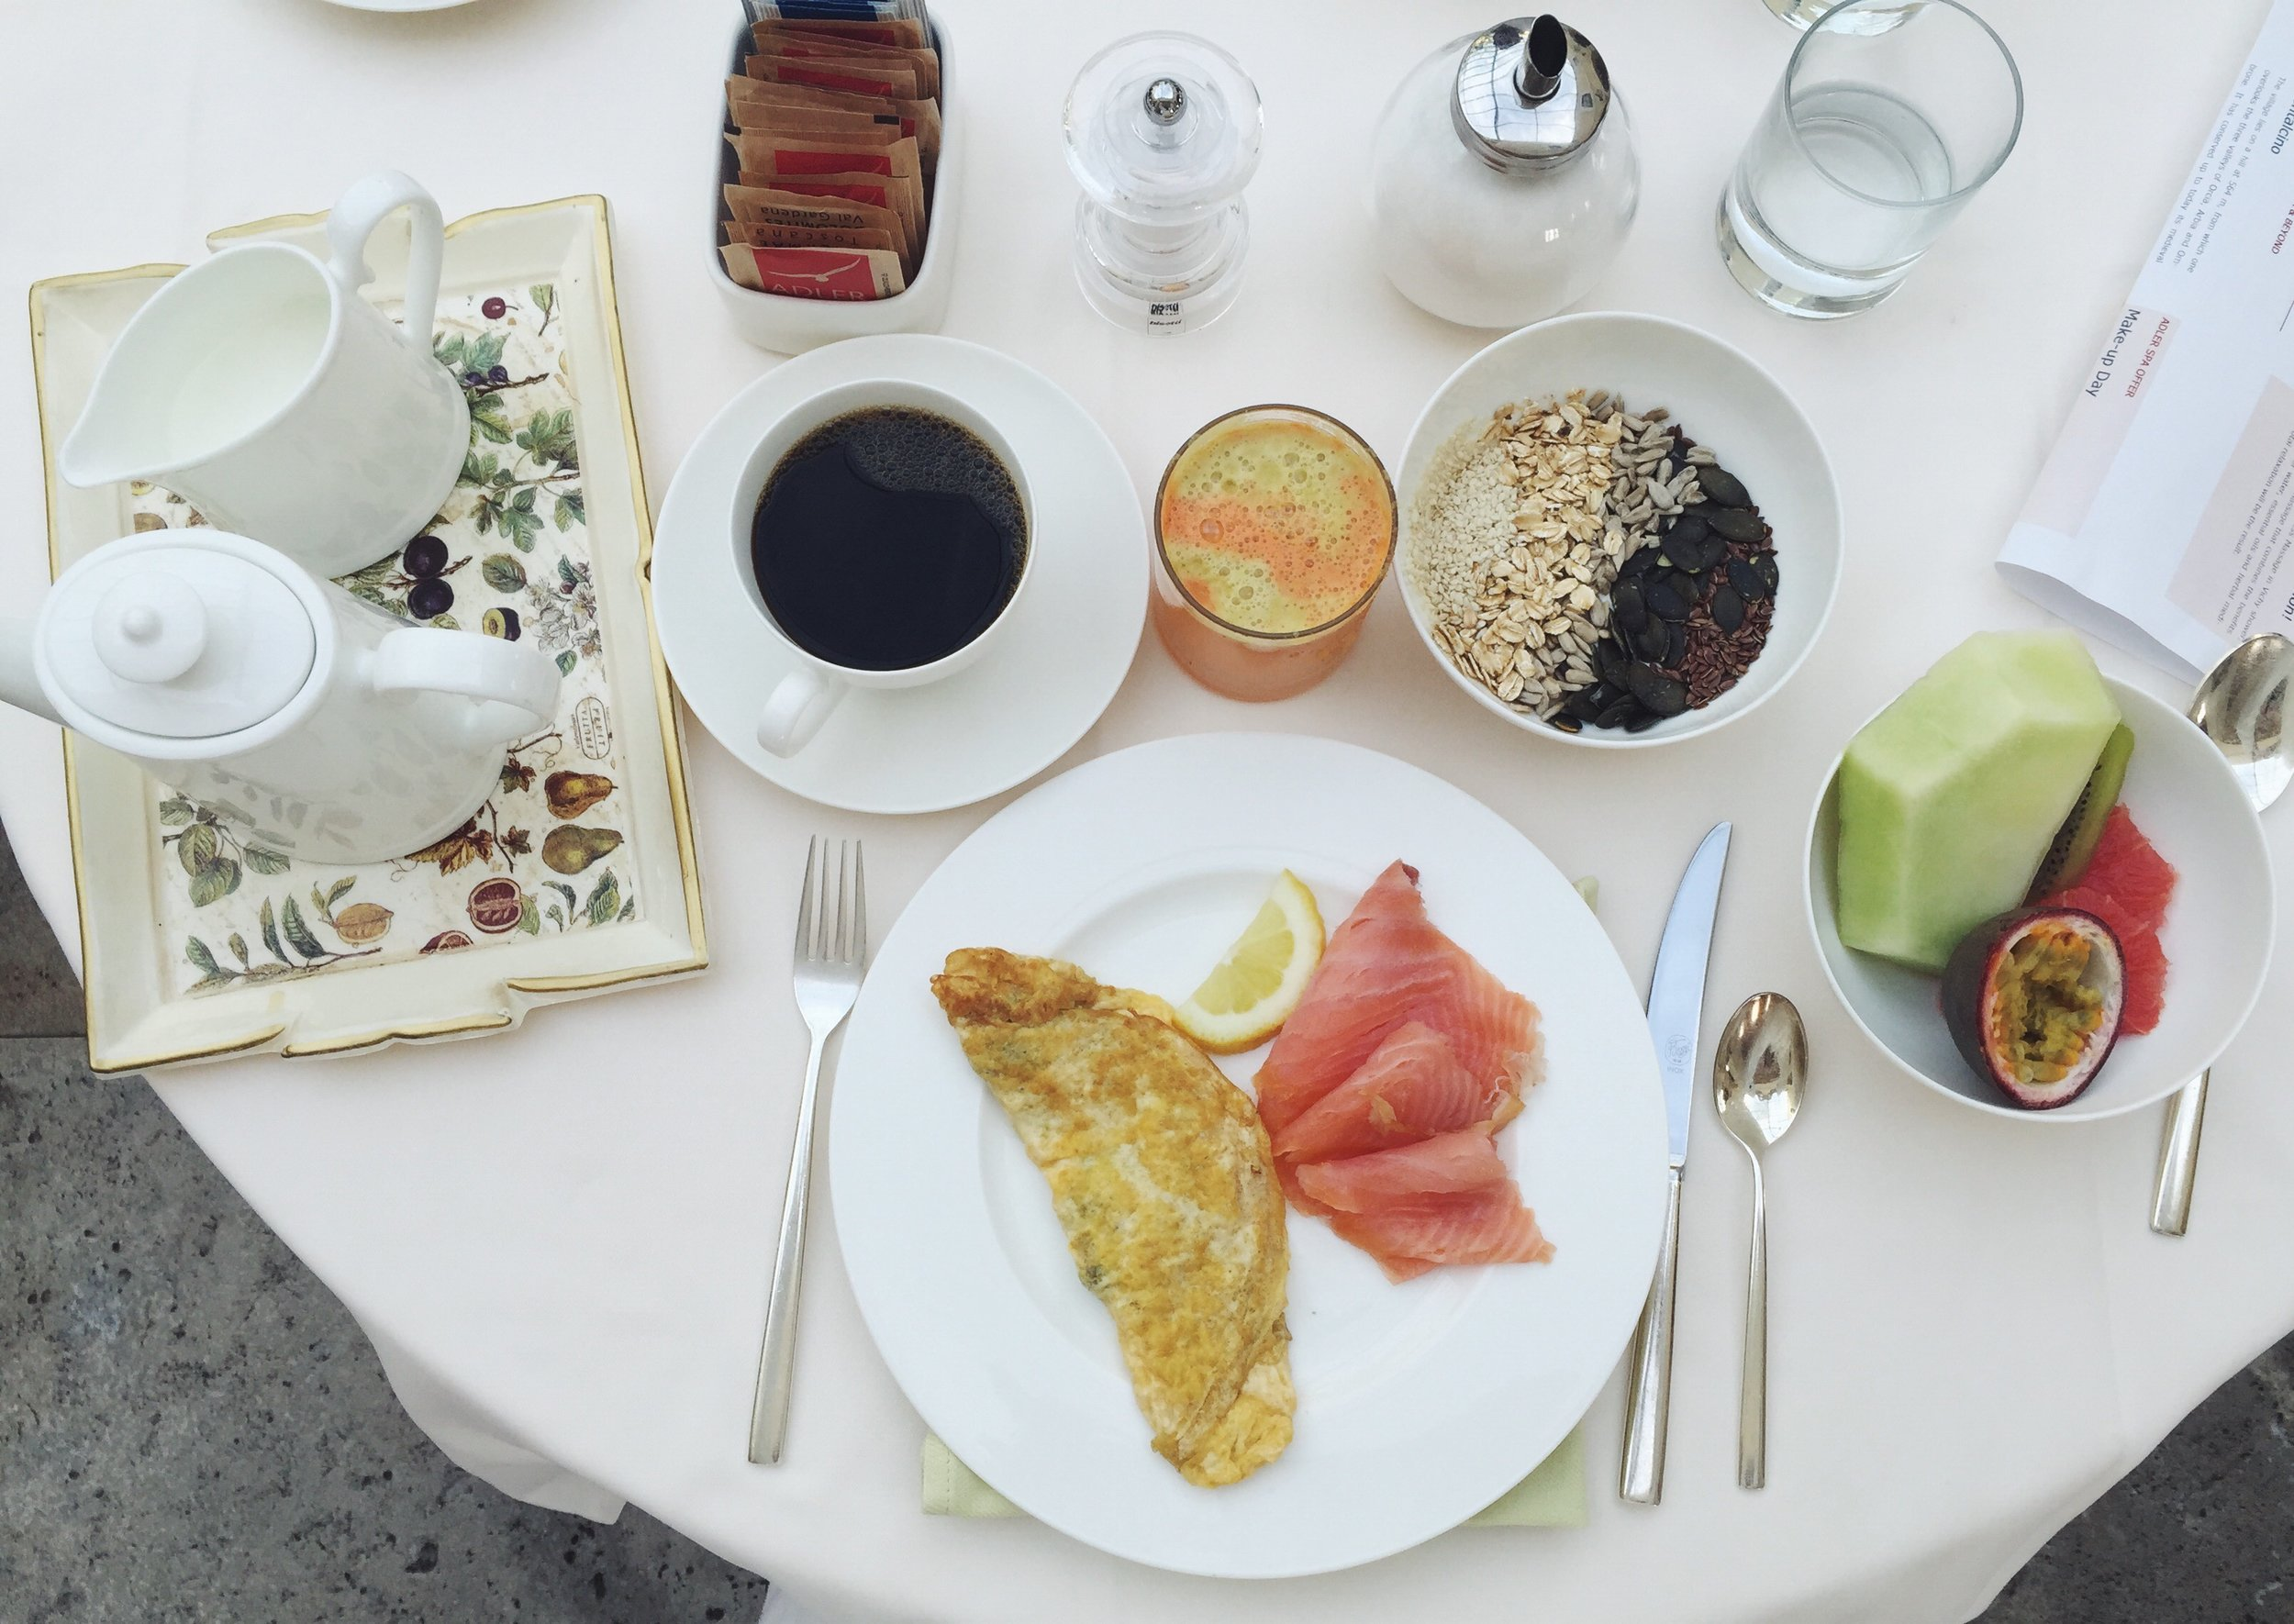 Adler Thermae Spa Resort, The Creative Larder Travel Writer Review, Breakfast.